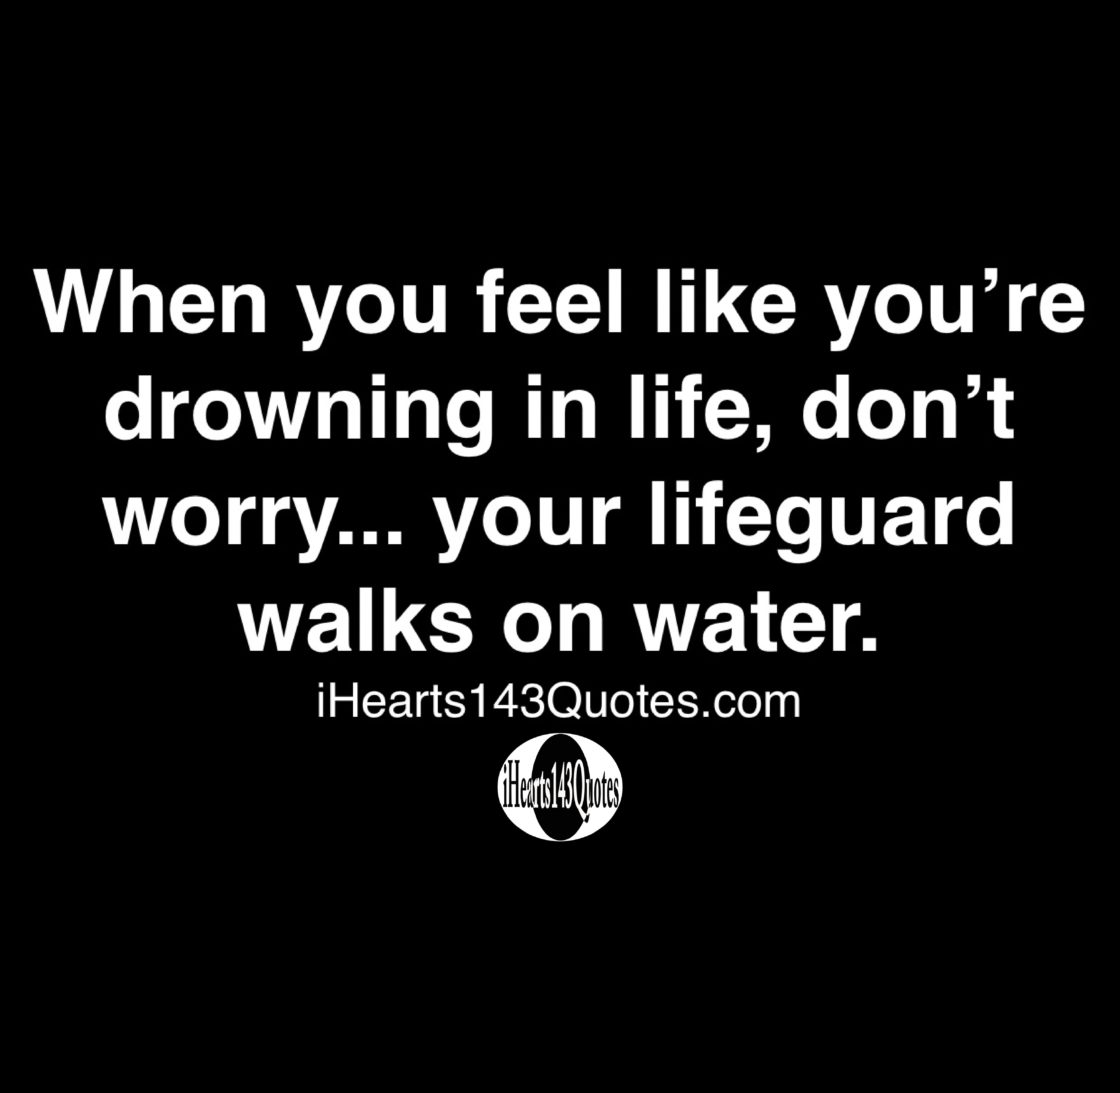 Daily Motivational And Inspirational Quotes Ihearts143quotes